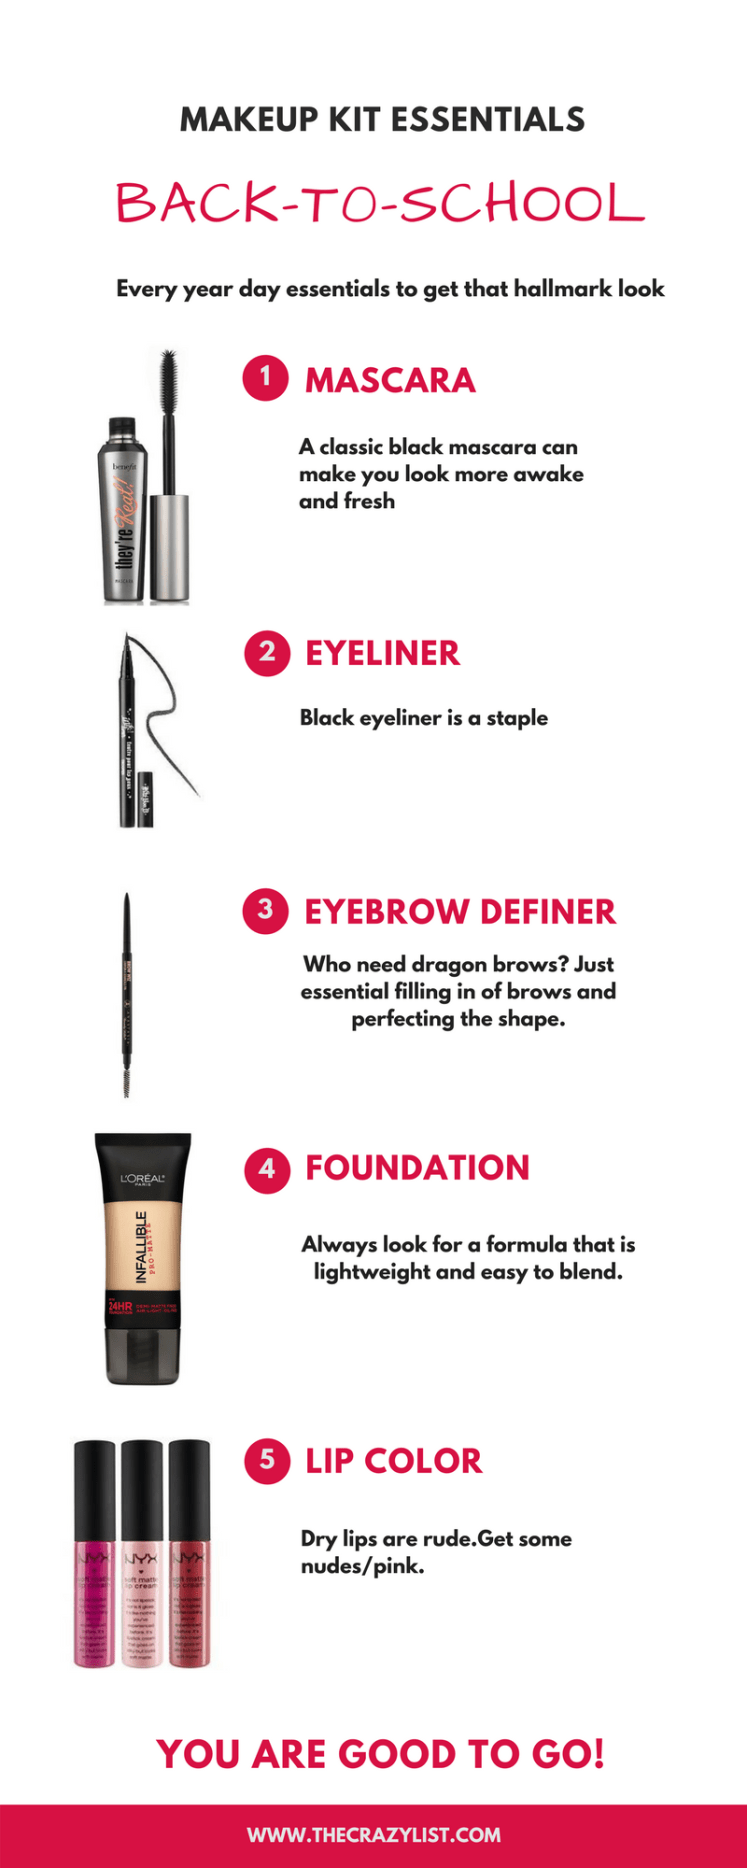 Back-To-School Makeup Kit Essentials